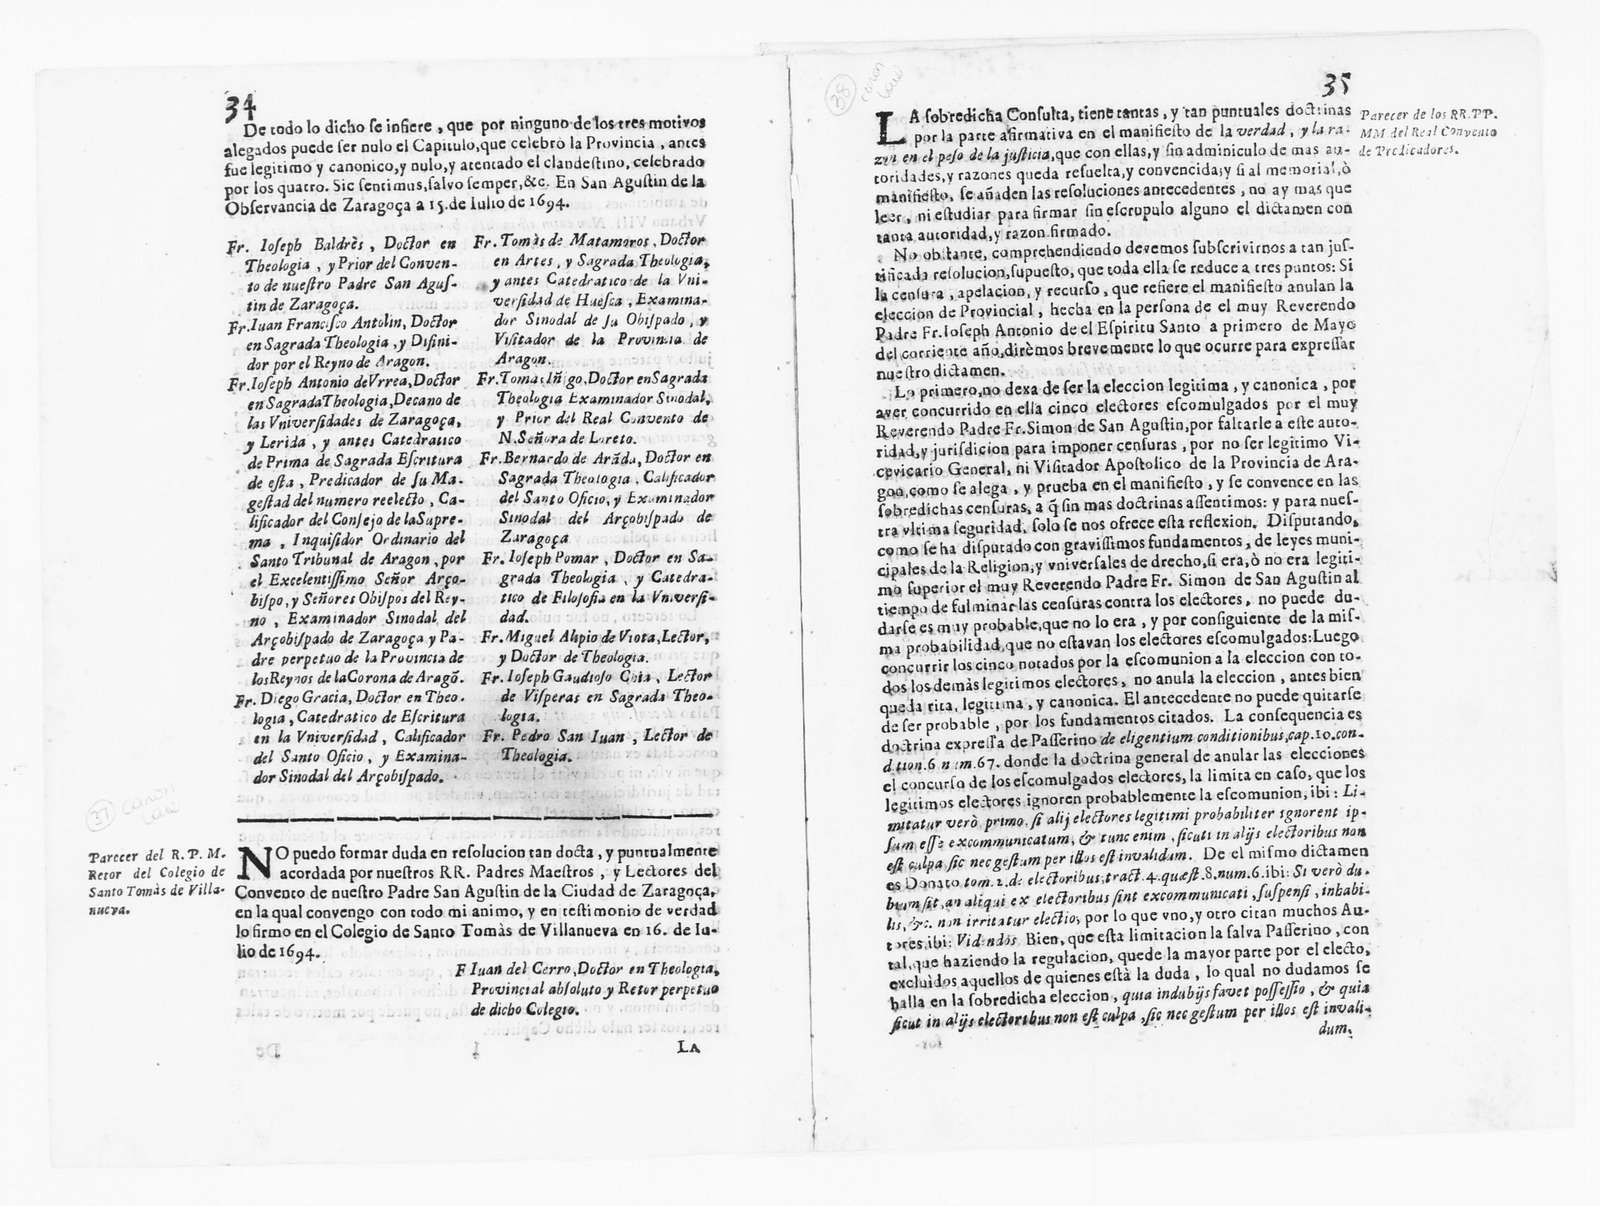 Opinion issued by Friar Juan del Cerro, the Rector of the School of Santo Tomás de Villanueva, concerning the appointment of José Antonio del Espíritu Santo as General Vice-Vicar of Spain and the American Indies of the religious order of San Agustín made by the Cardinal of said religious order of San Agustín. July 16, 1694